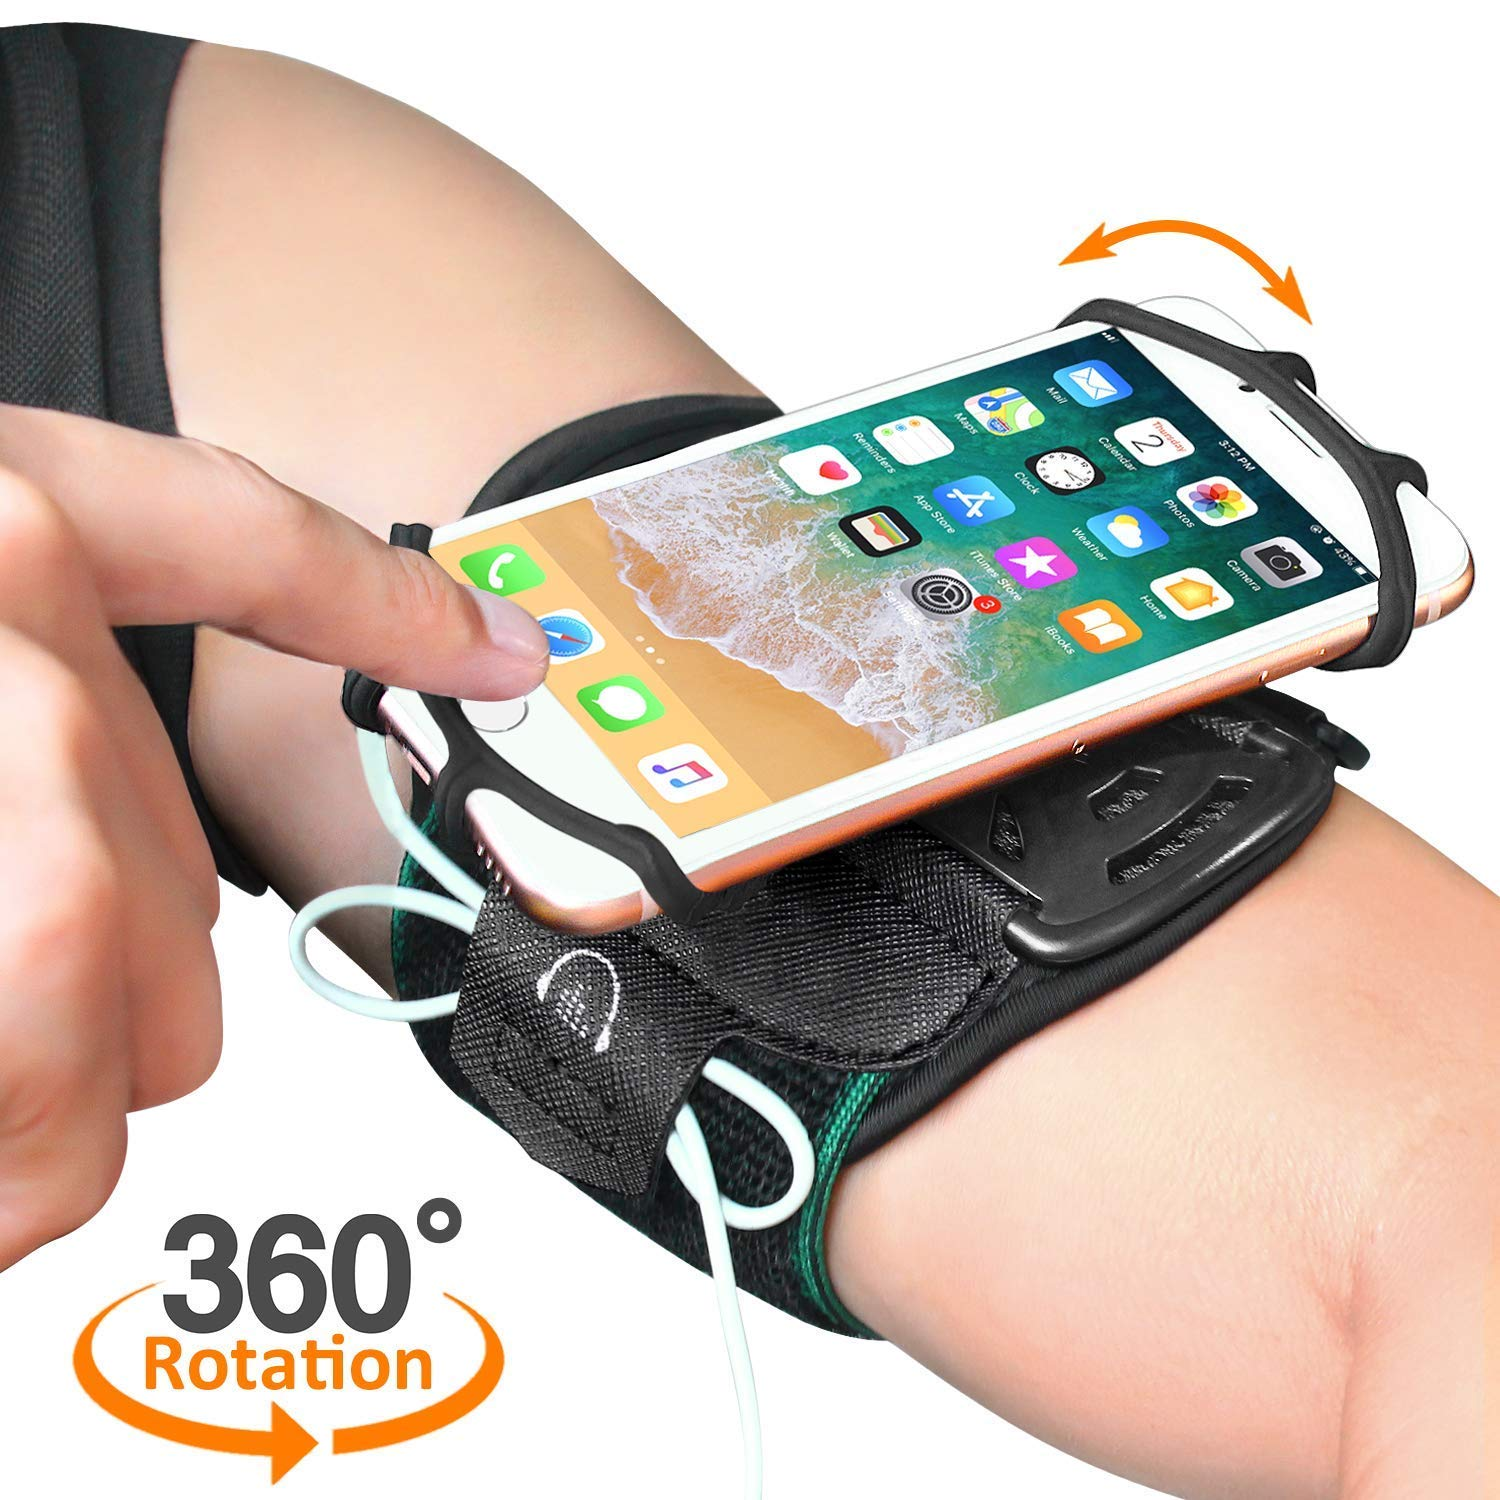 Brazalete Deportivo, MATONE Brazalete Movil Súper Transpirable para iPhone X 8 7 6S Plus,